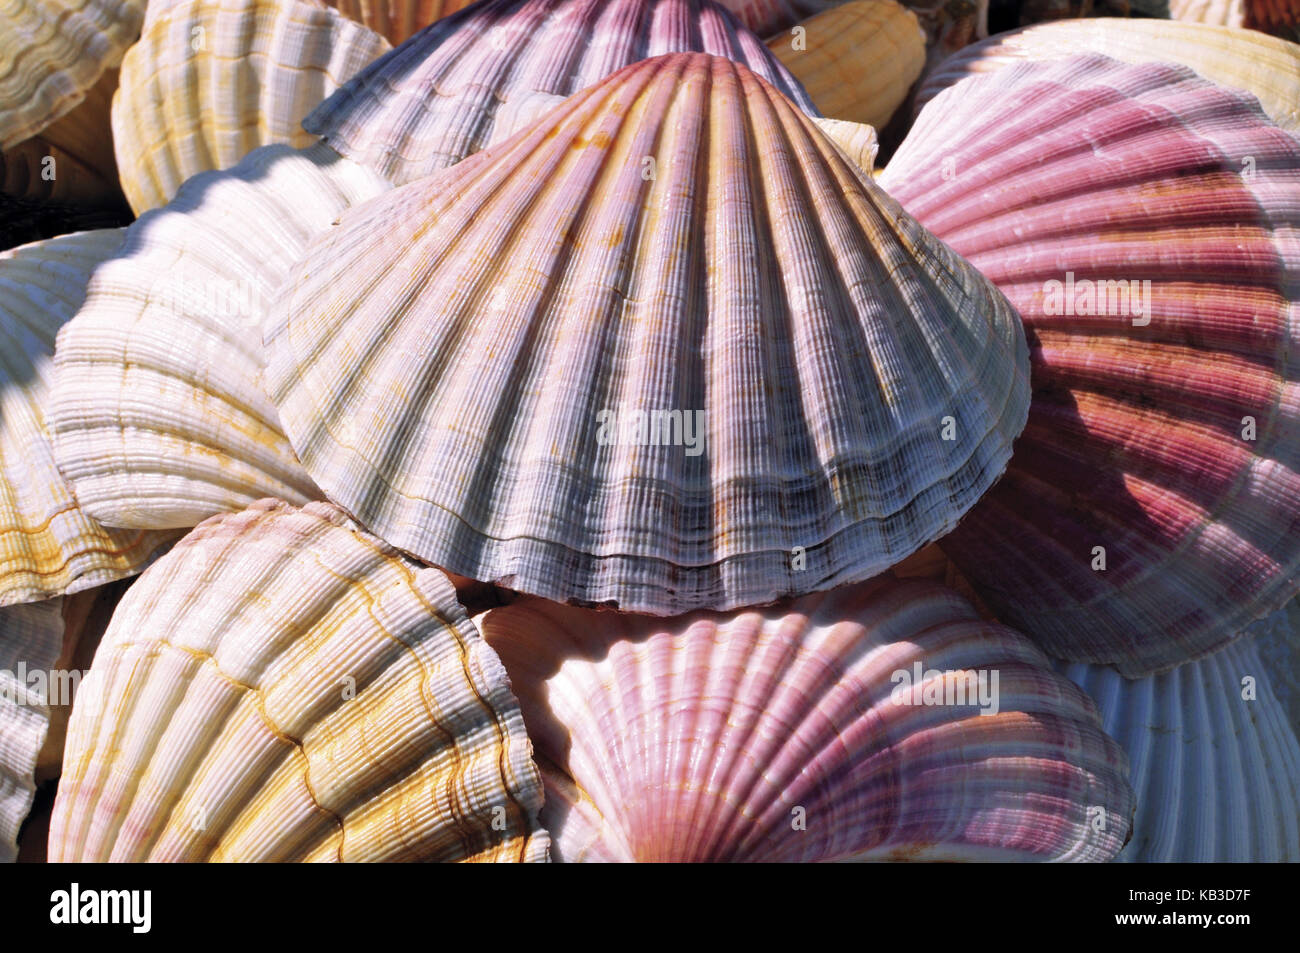 Spain, Way of St. James, scallop shells as a souvenir and icon of the jacobean pilgrim s, - Stock Image